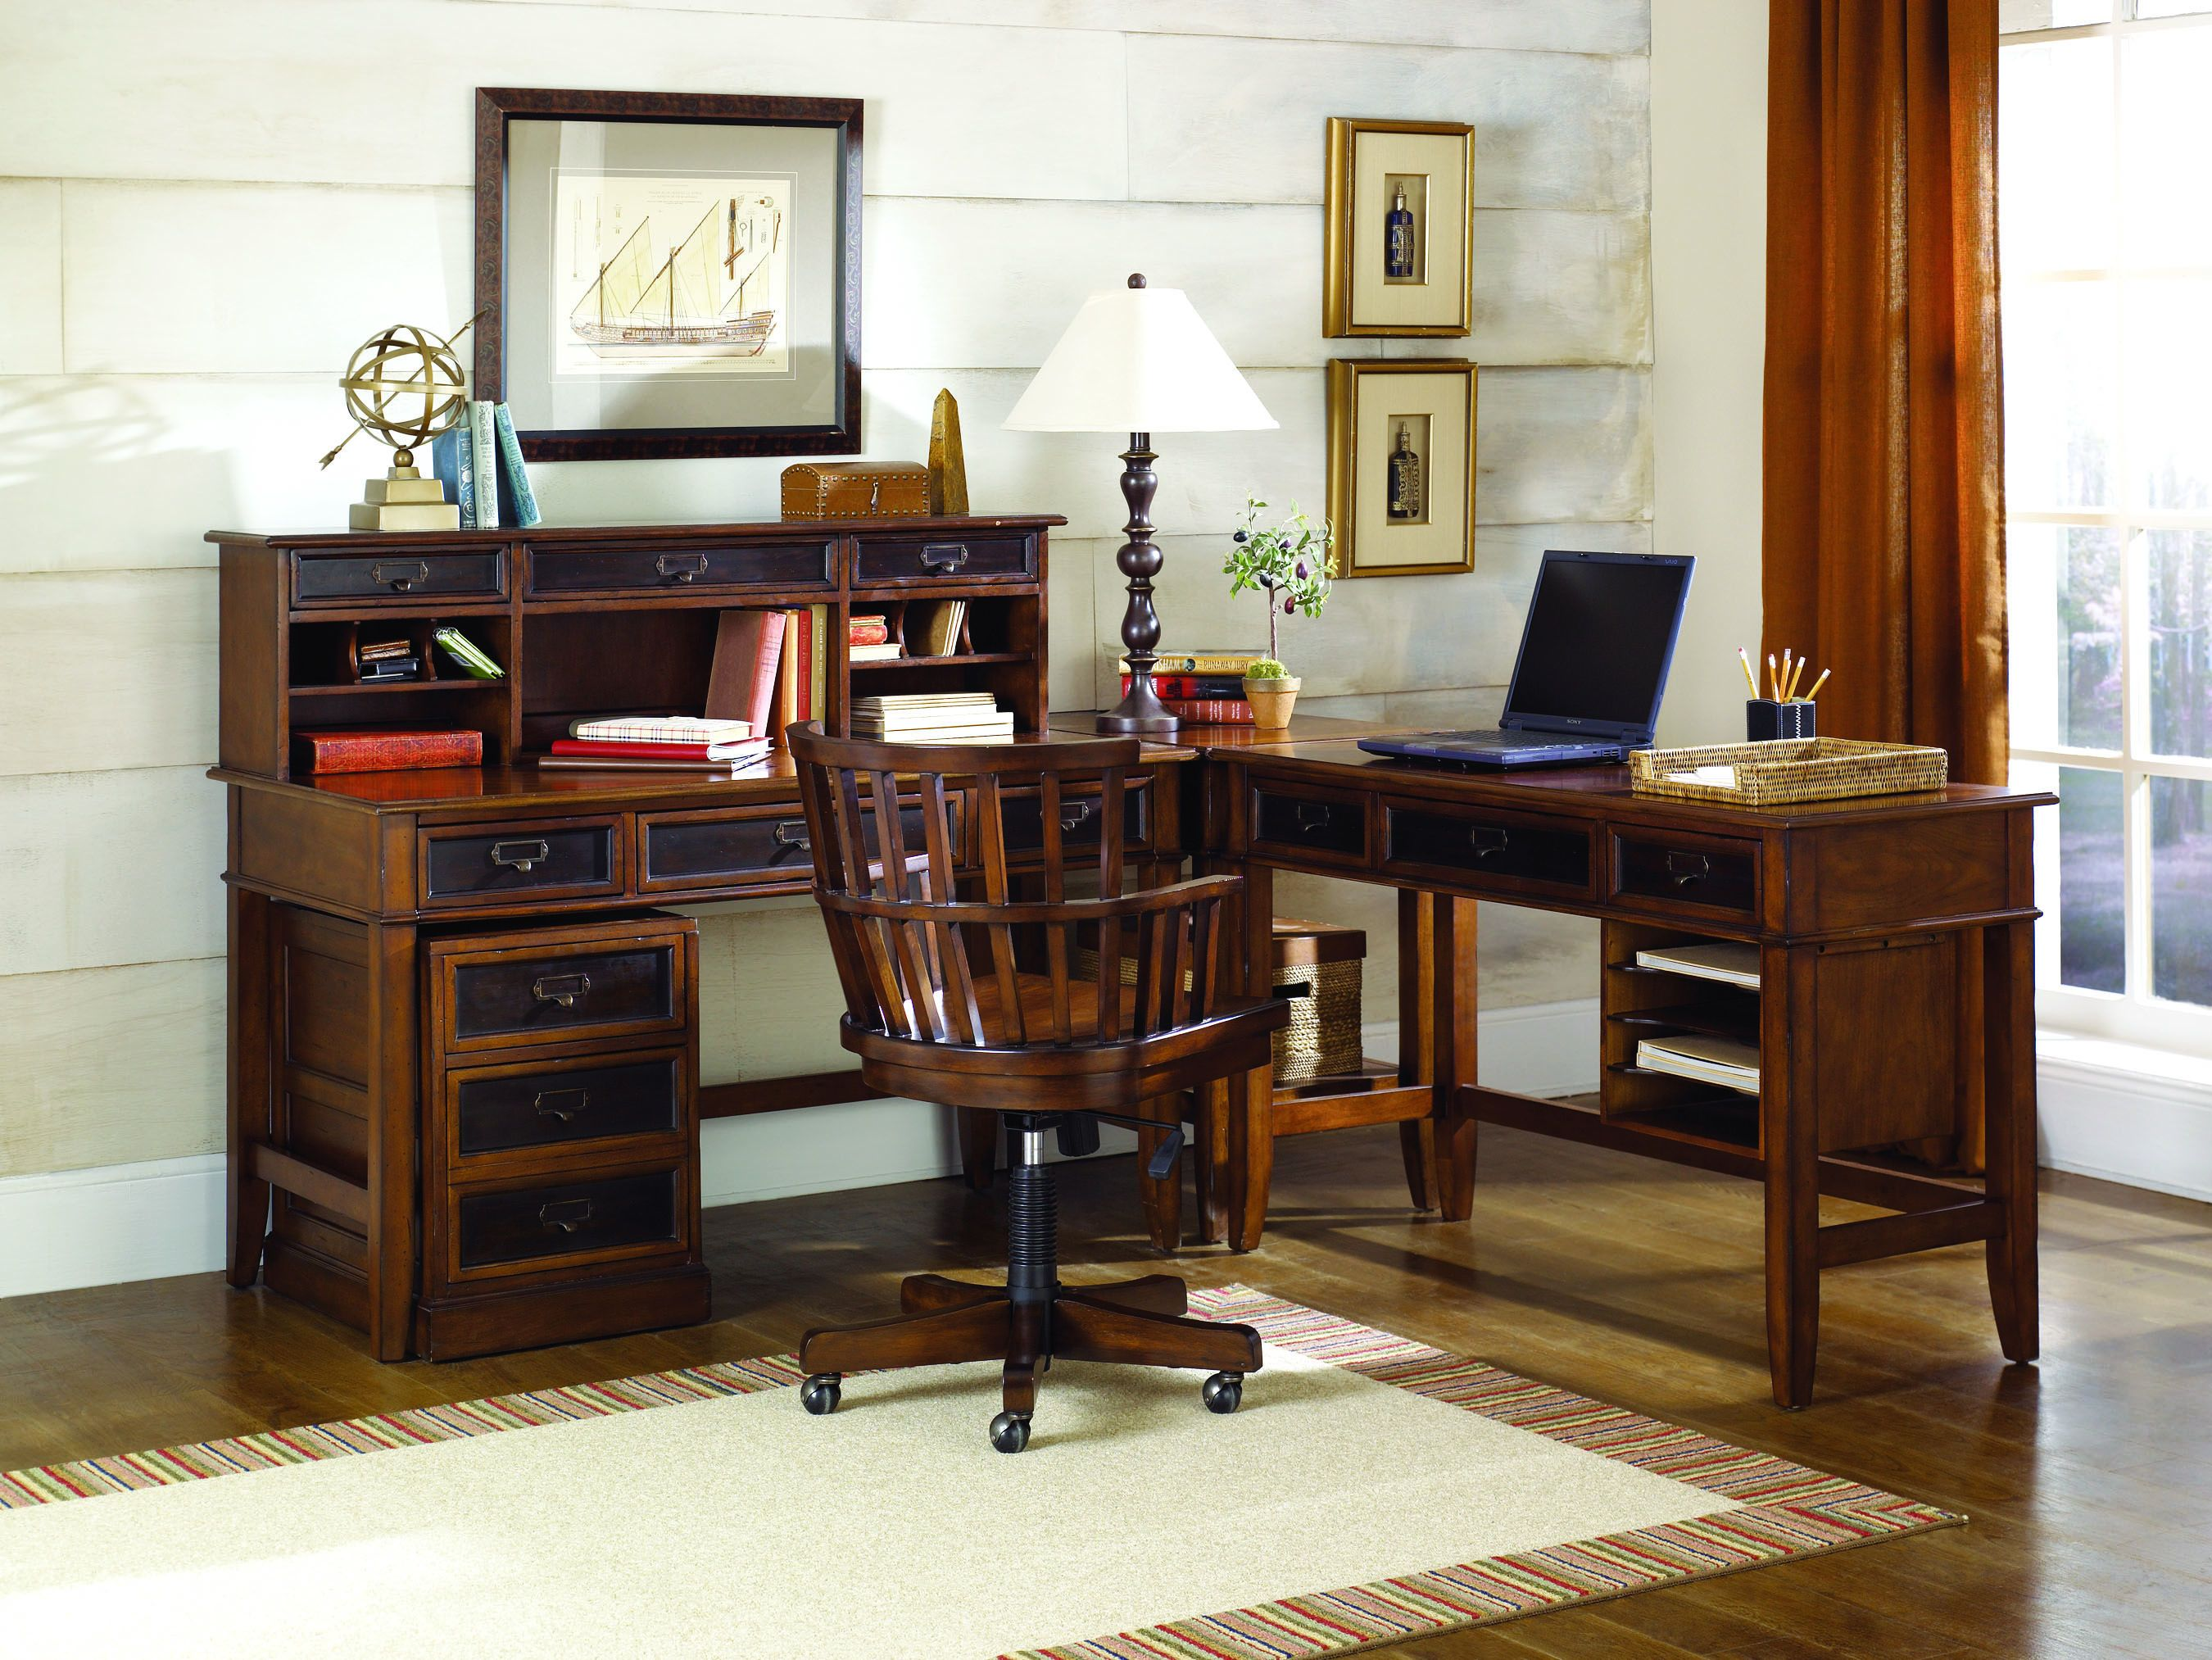 home office desk furniture house small home remodel ideas with home